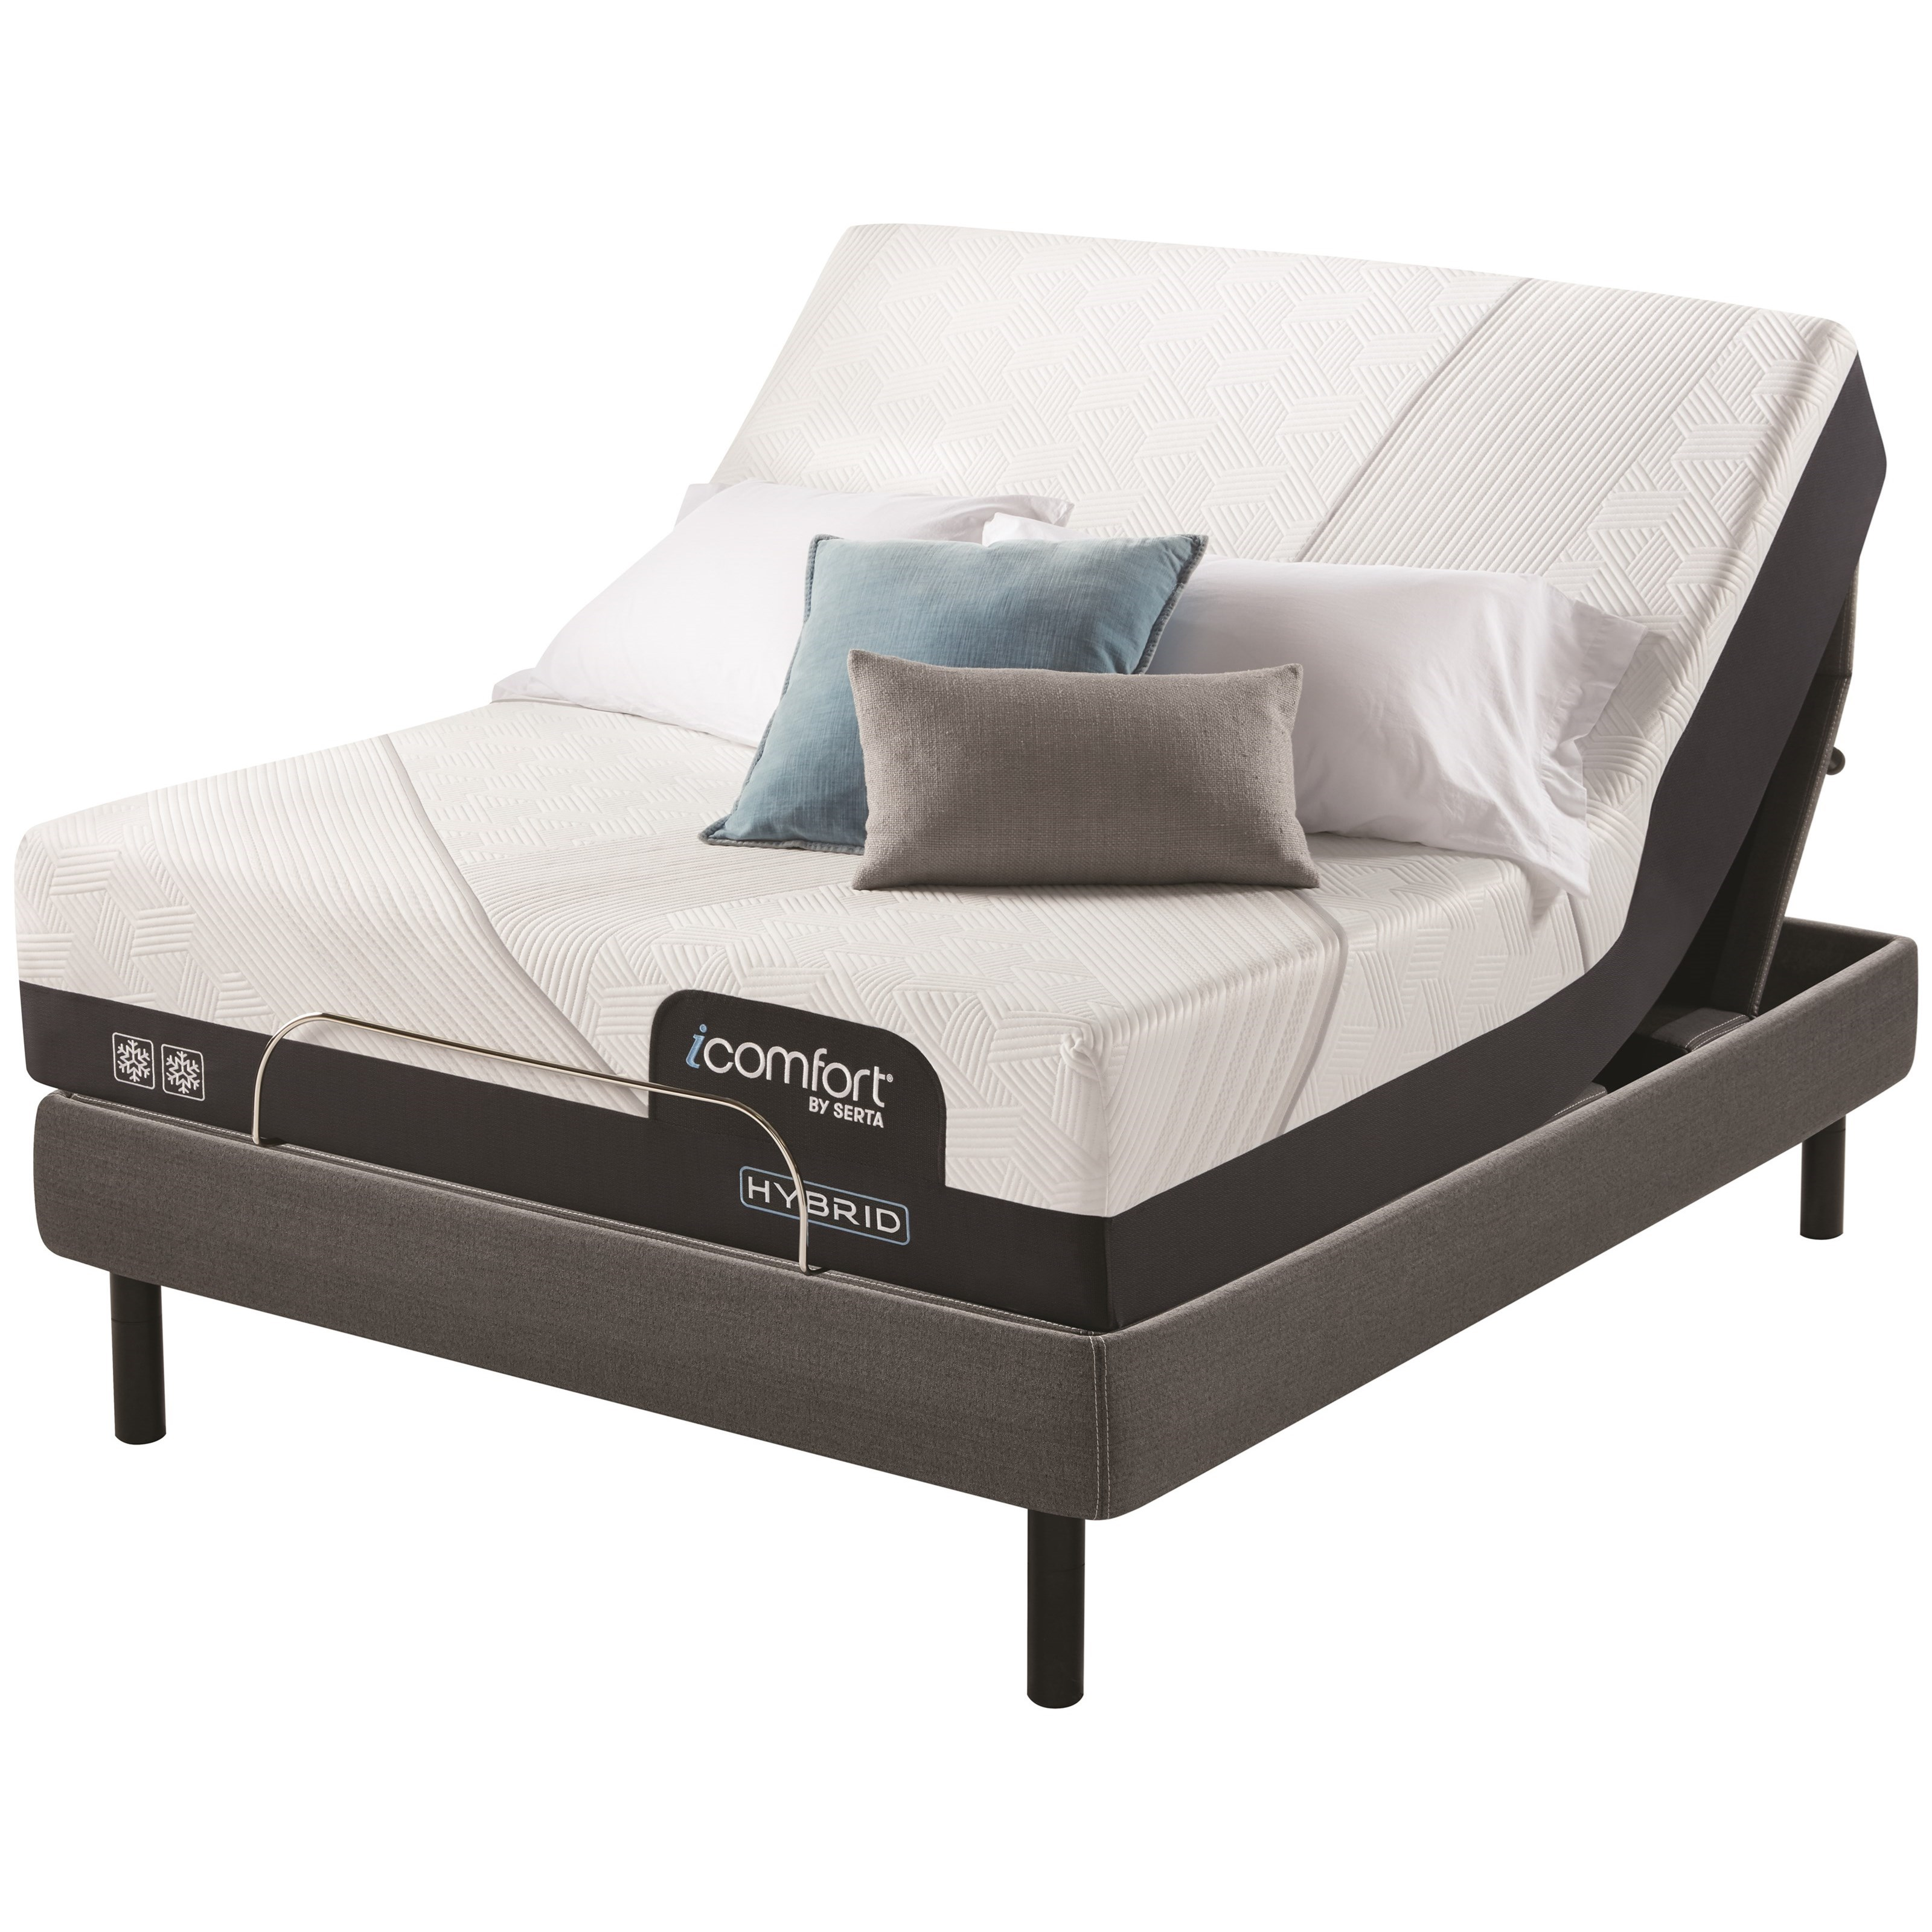 "CF2000 Hybrid Firm King 12 1/2"" Firm Hybrid Adj Set by Serta at Walker's Mattress"